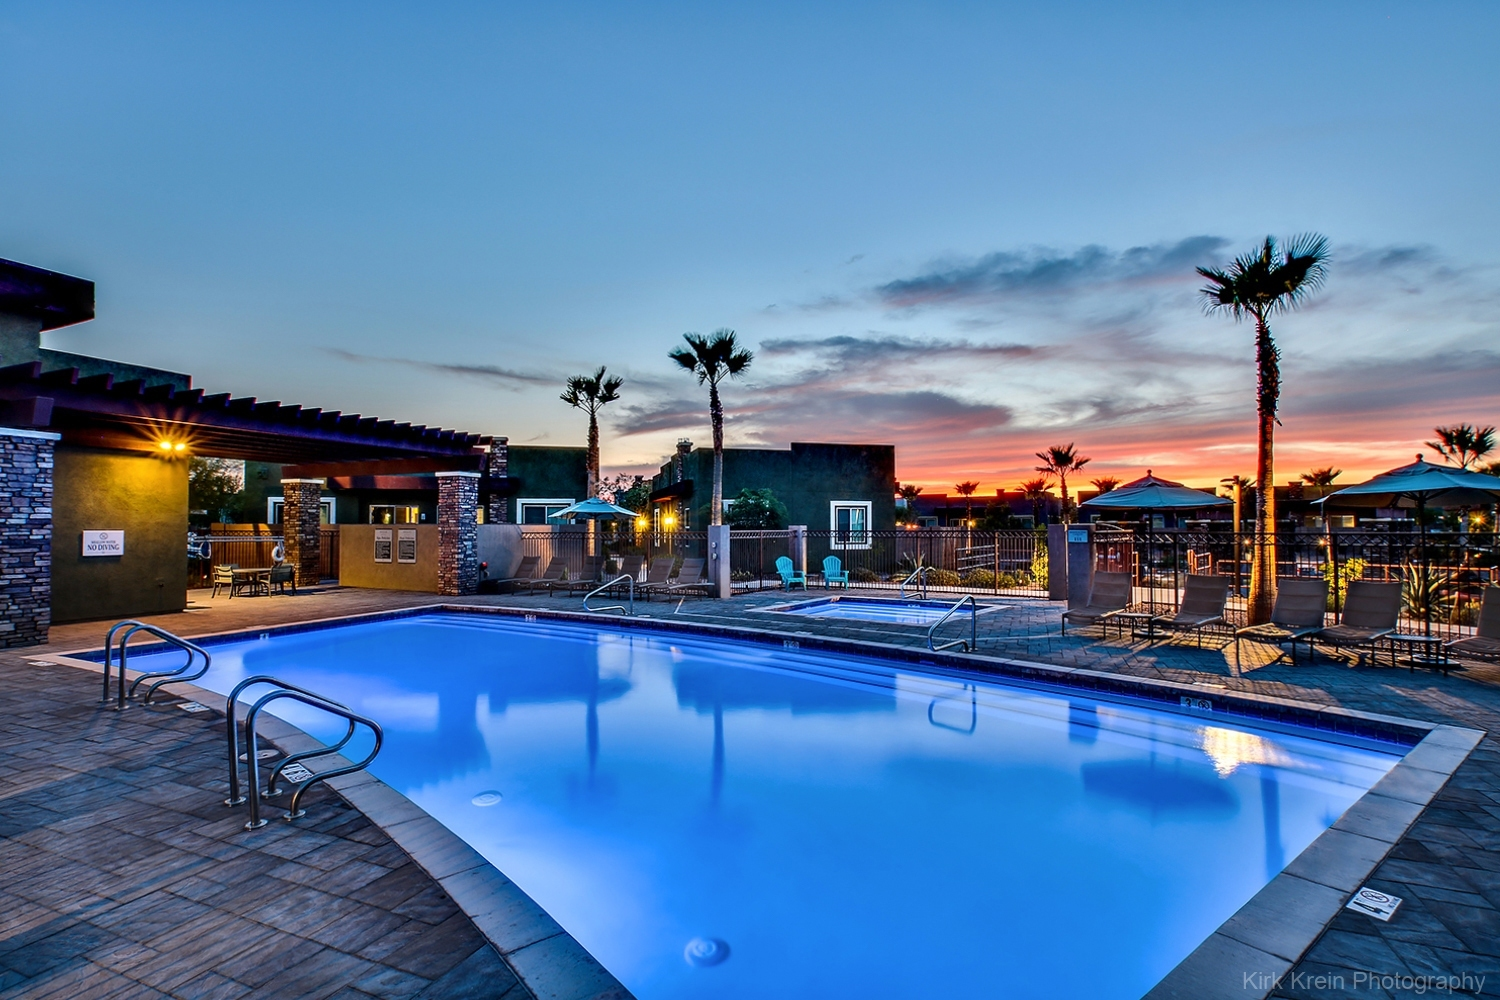 Gilbert, AZ Multifamily Pool Twilight - Architectural and Commercial Real Estate Photography by Kirk Krein, Phoenix, AZ and East Valley